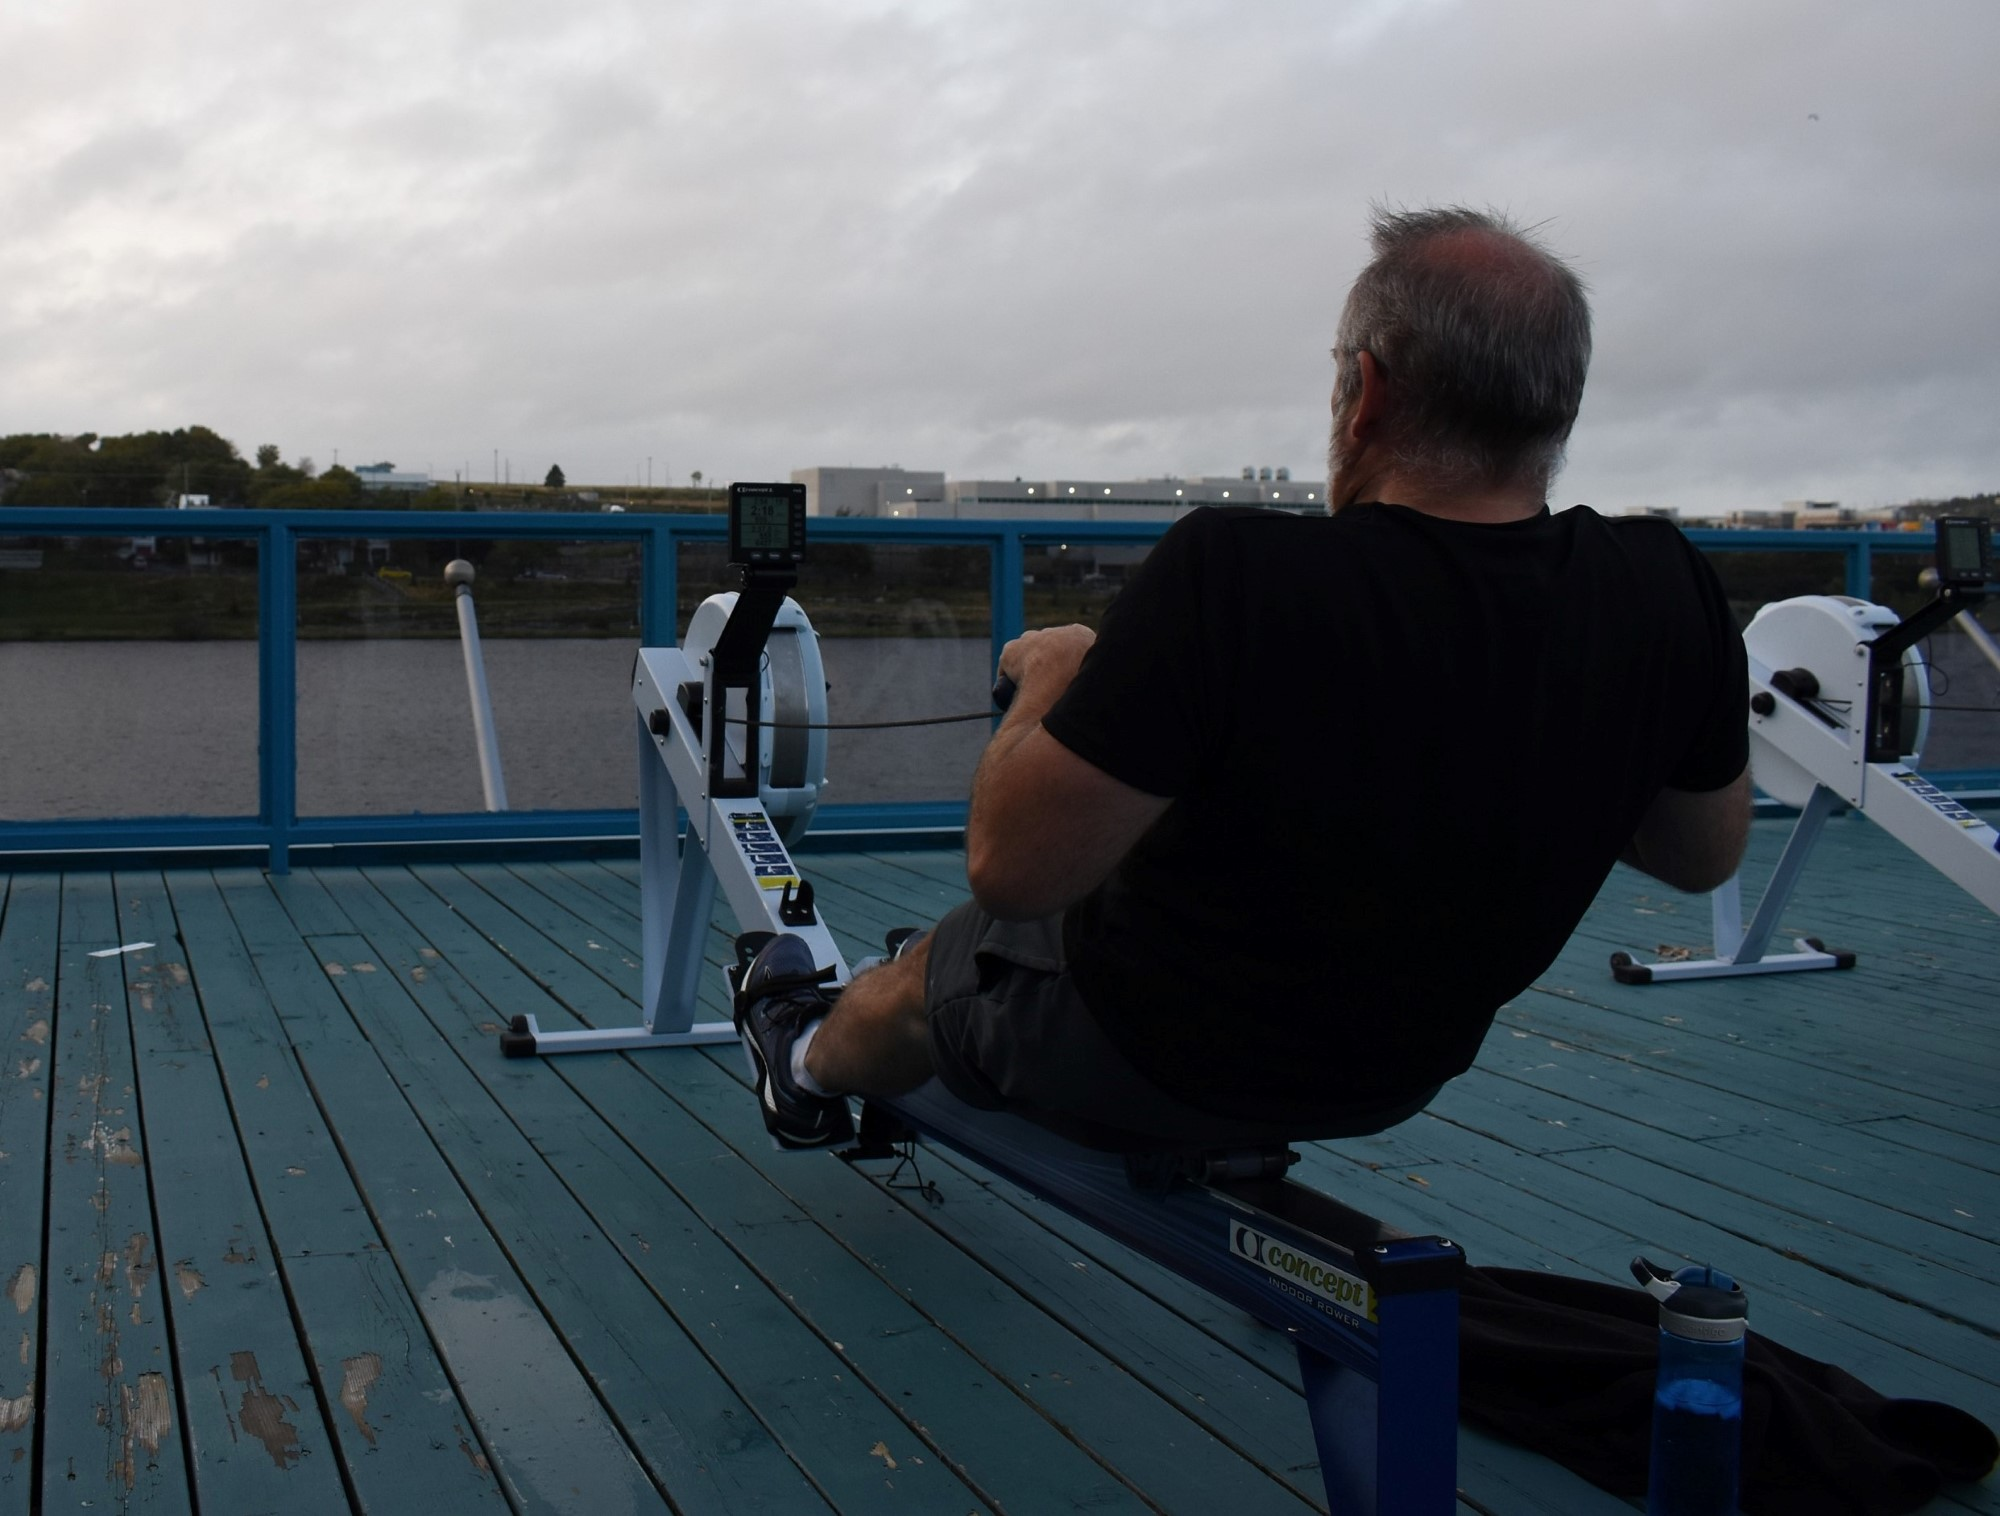 Keith Bussey is the stroke oar for his rowing team. Since the boathouse has opened up rowers like Bussey can return to train